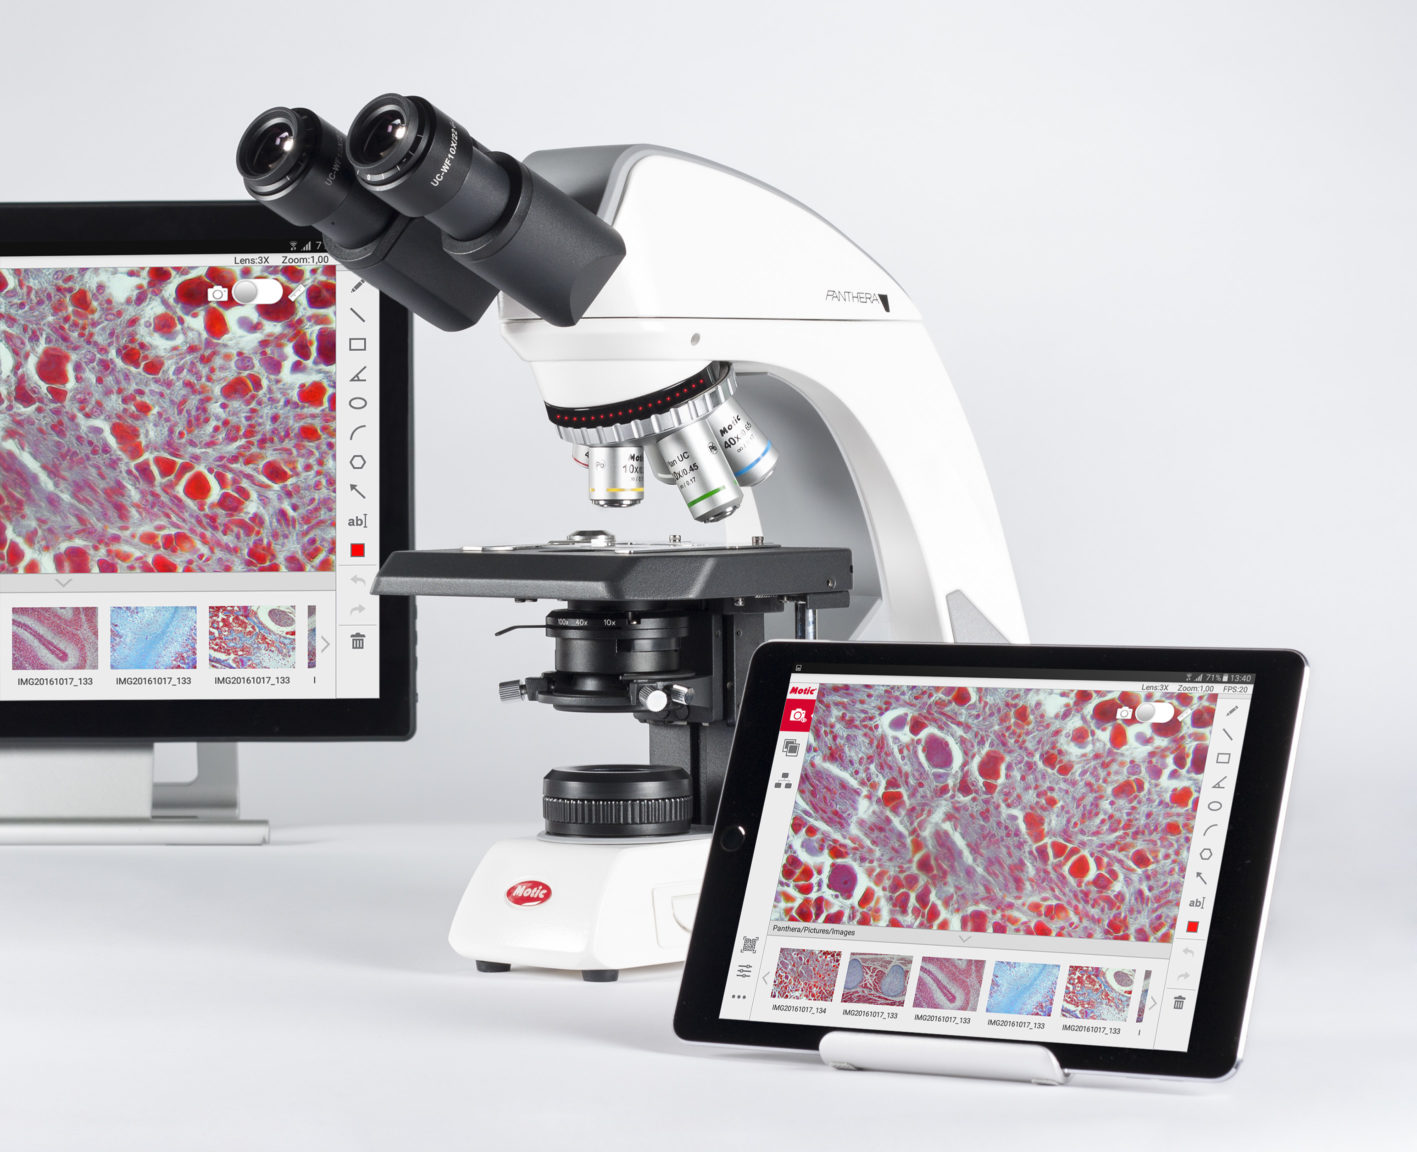 Forensic Science Microscopy - Microscope solutions for ... |Forensic Science Microscope